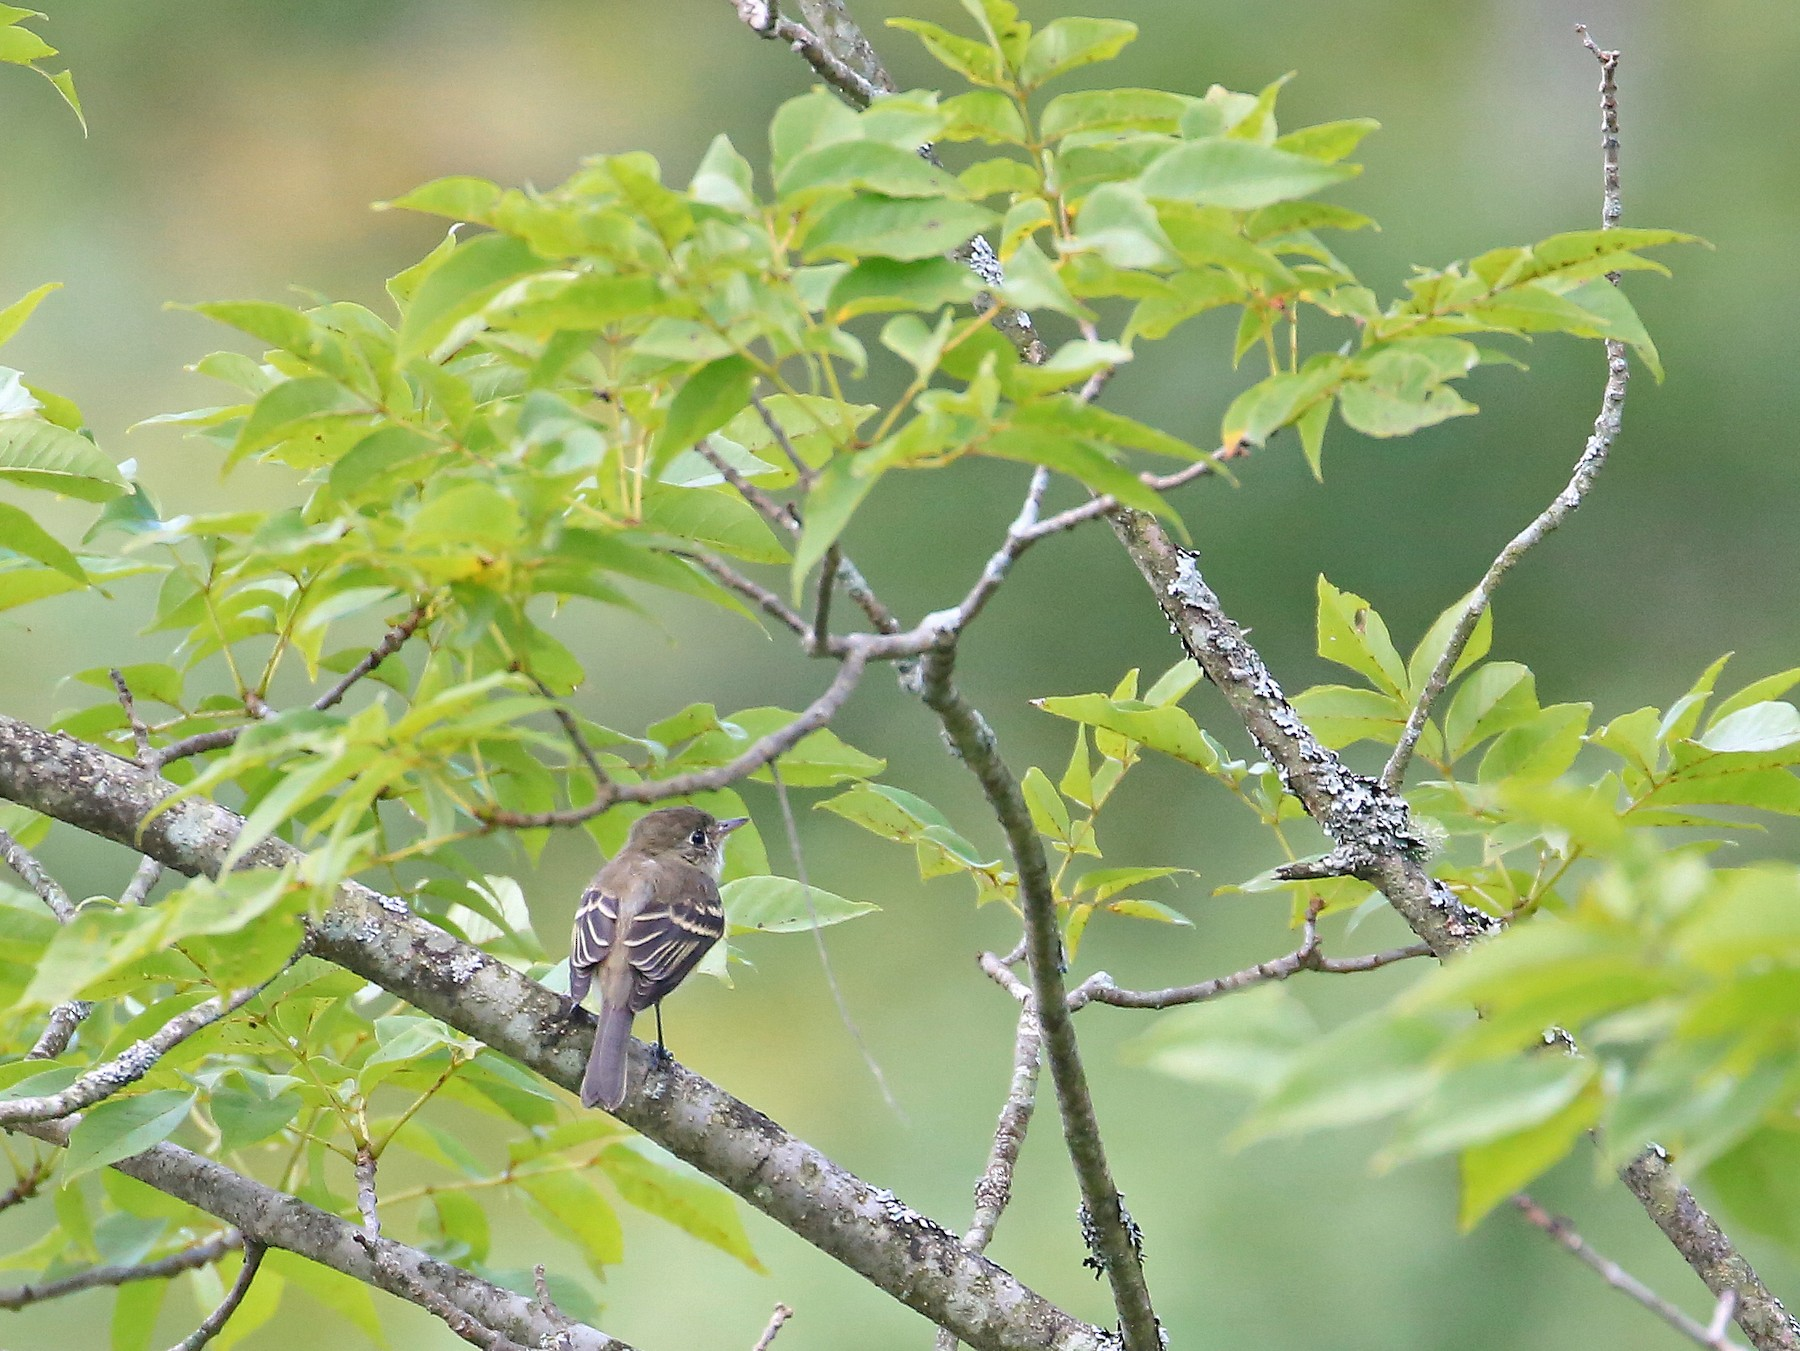 Least Flycatcher - Tim Lenz